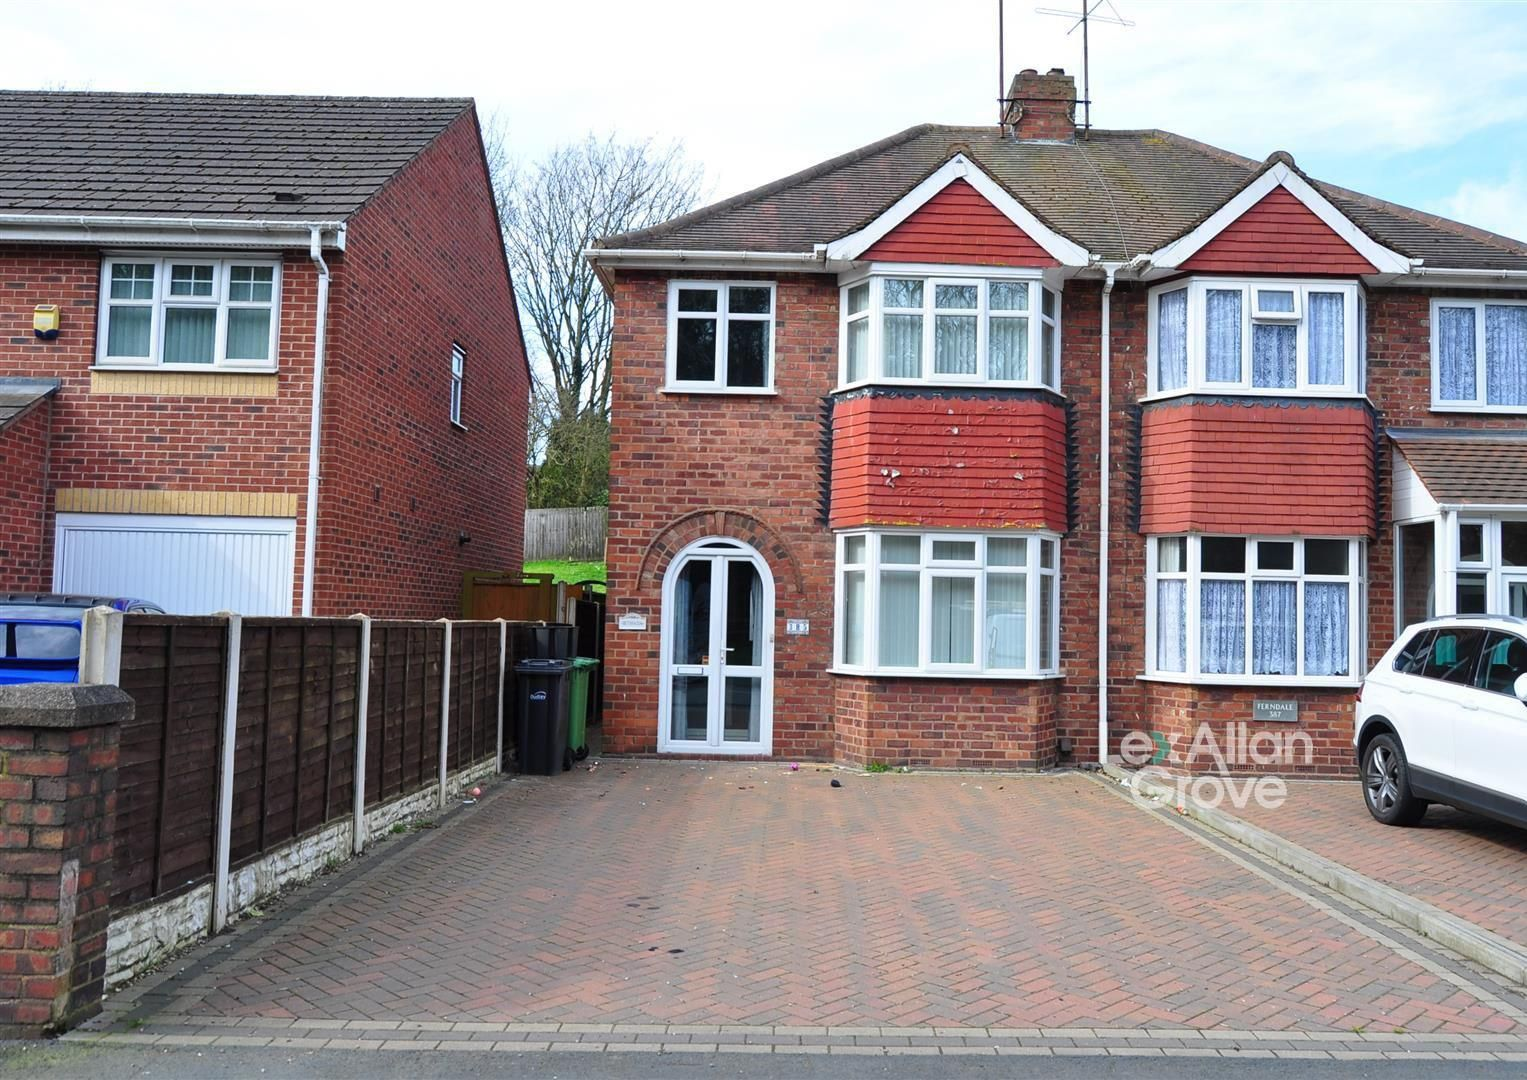 3 bed semi-detached for sale, DY1